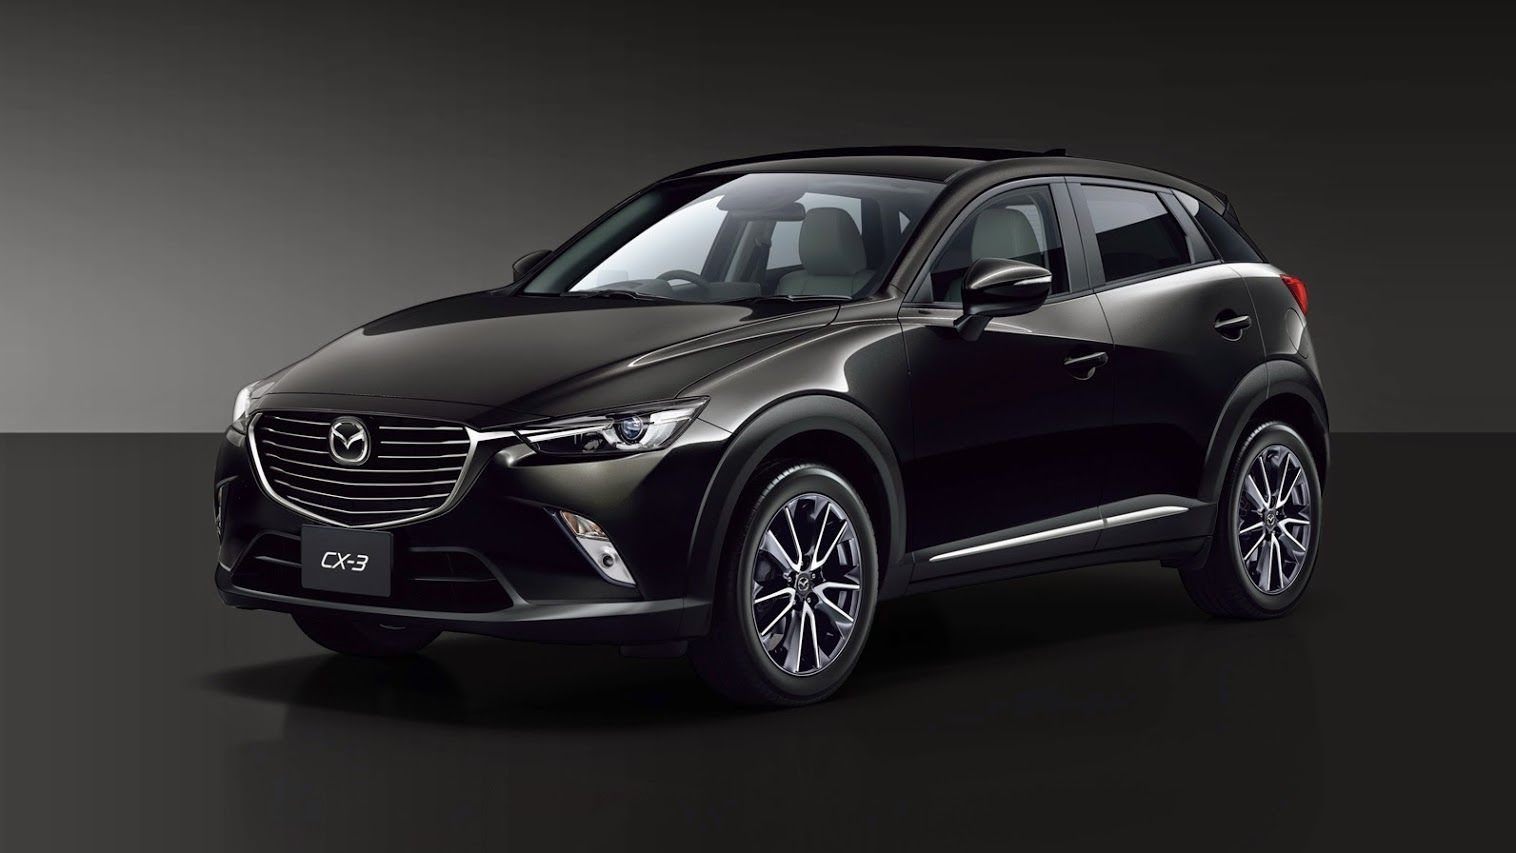 What Color Mazda Cx3 Will You Be Ordering Autos Coches